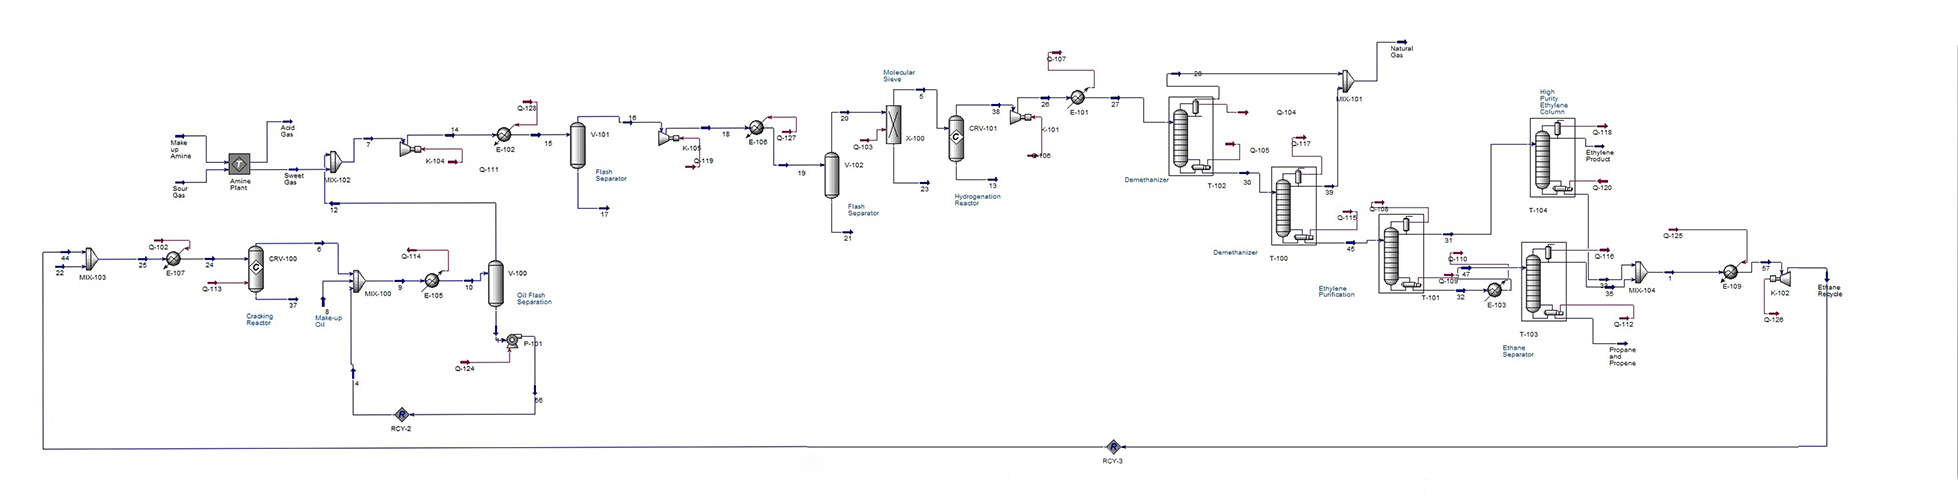 Shale gas to ethylene g1 processdesign appendix iiihysys simulation pooptronica Image collections